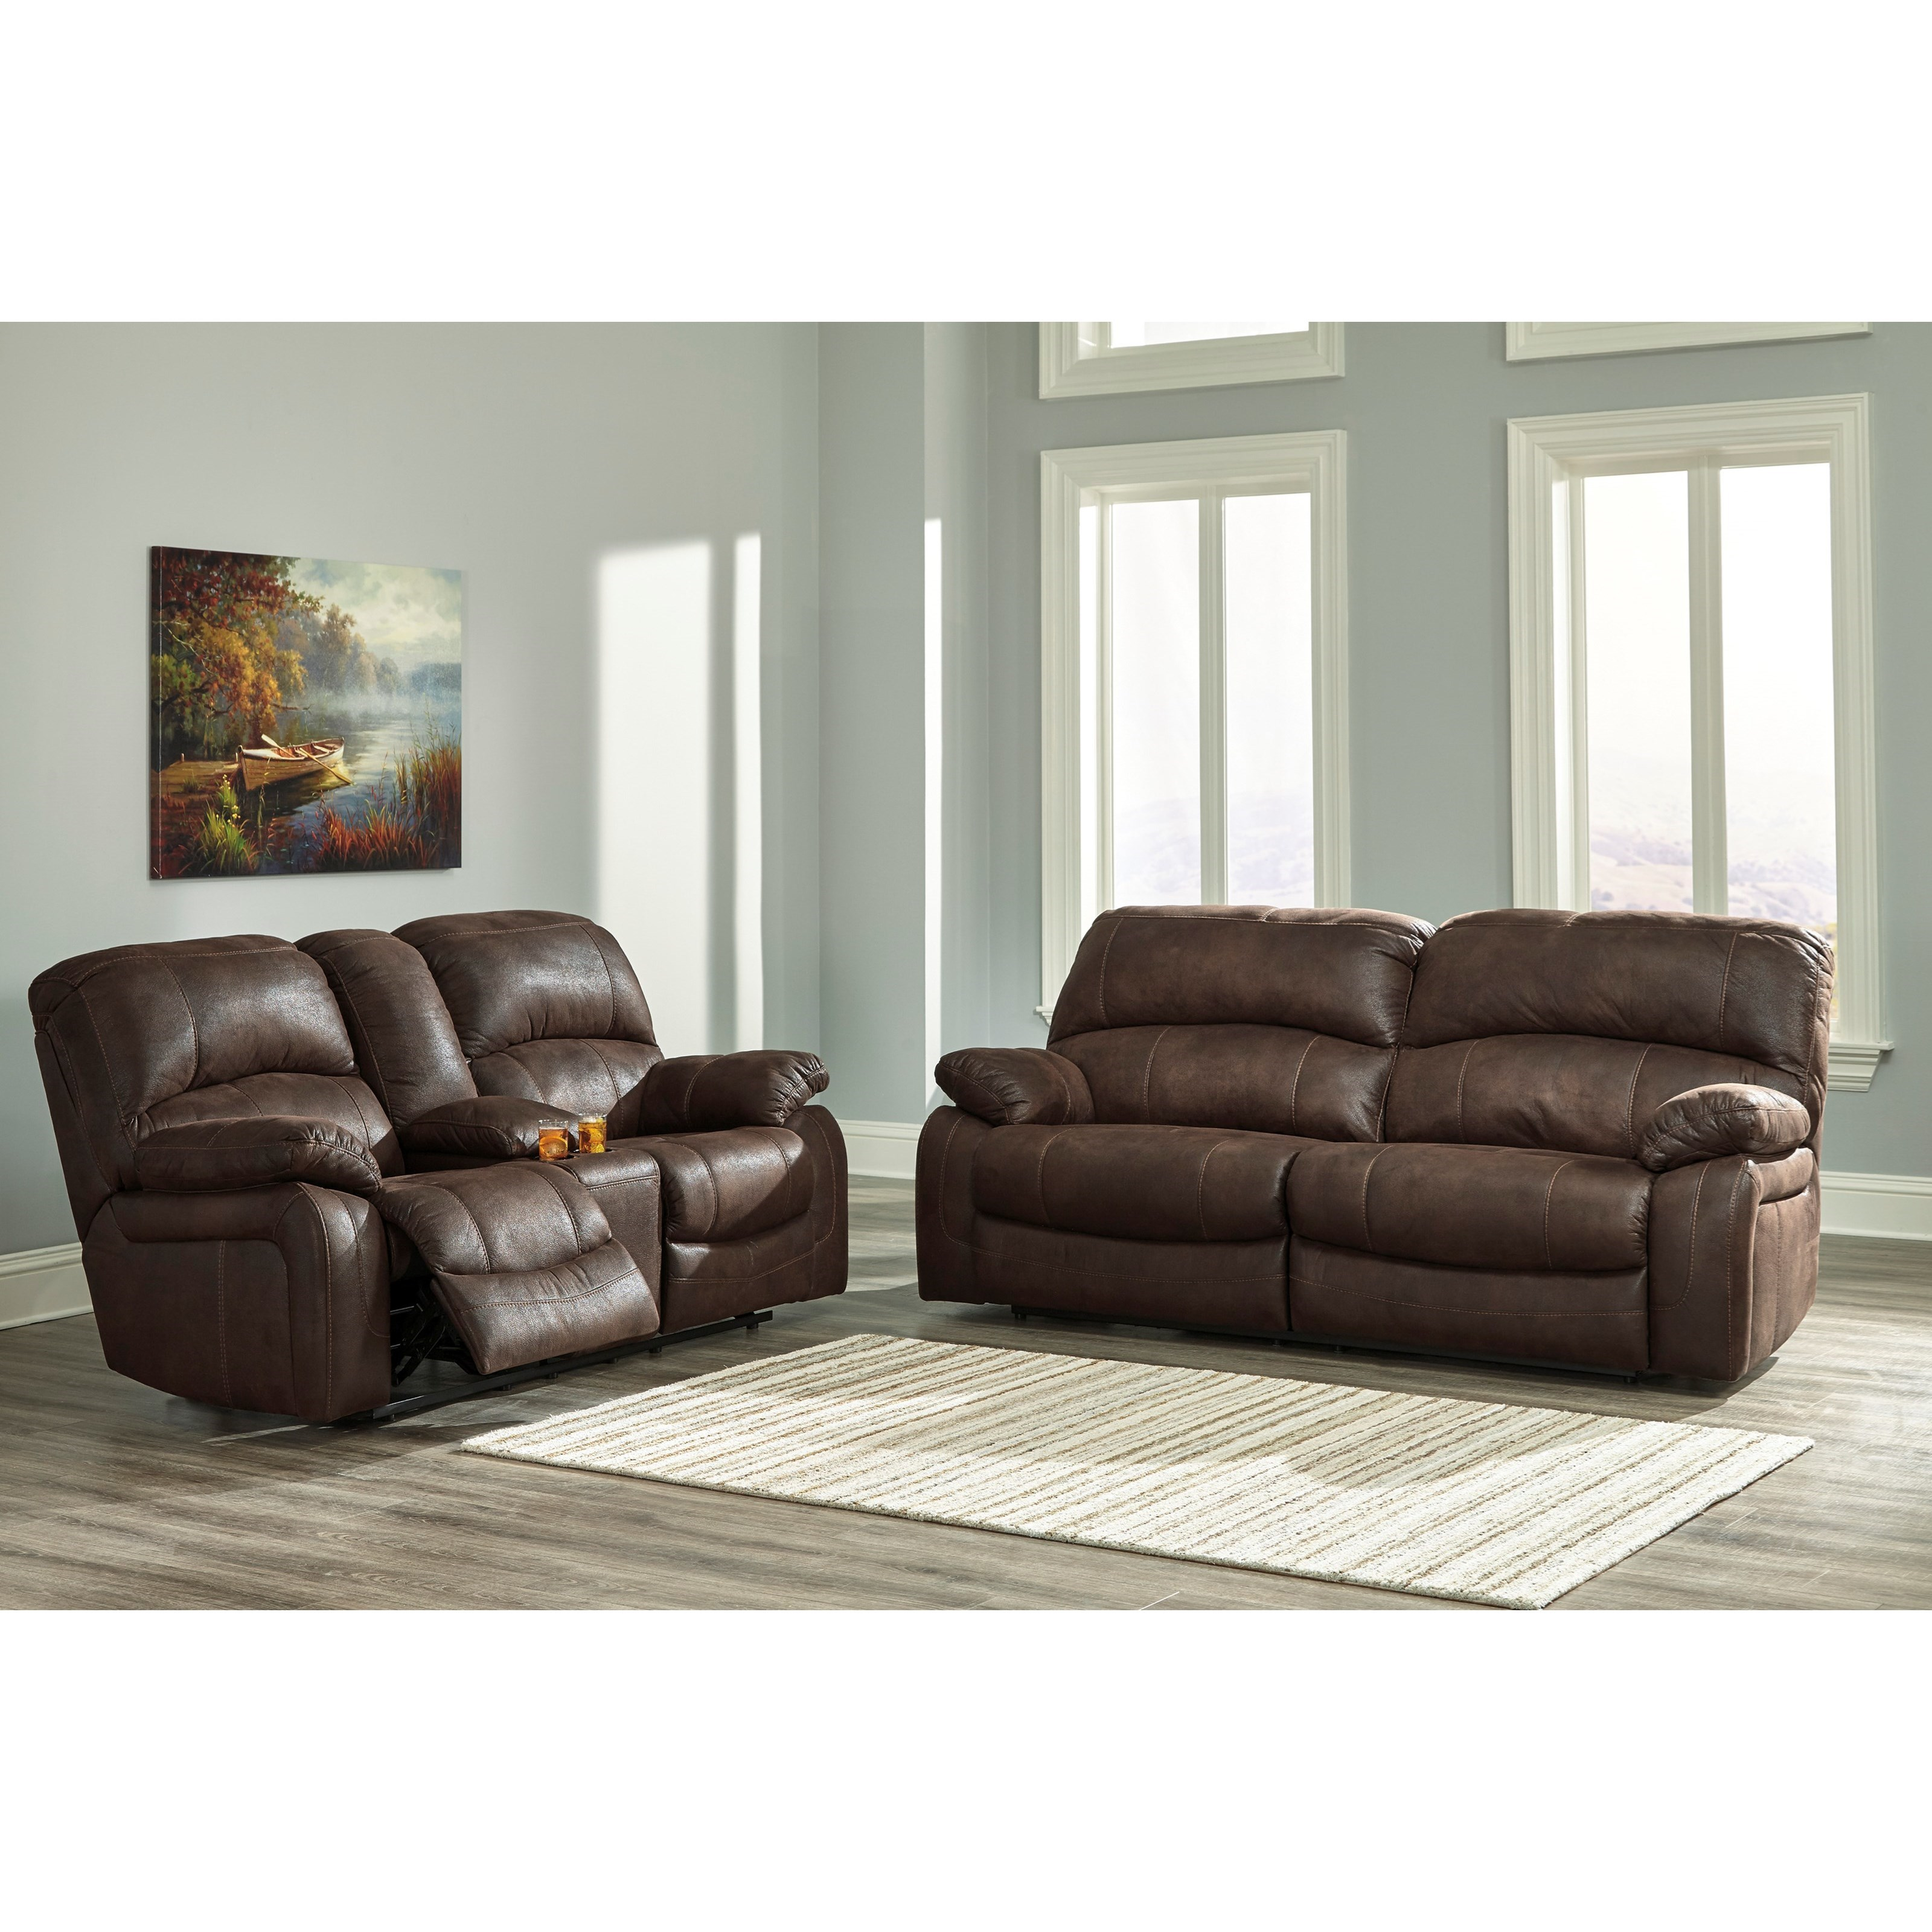 Signature Design by Ashley Zavier Reclining Living Room Group - Item Number: 42901 Living Room Group 1